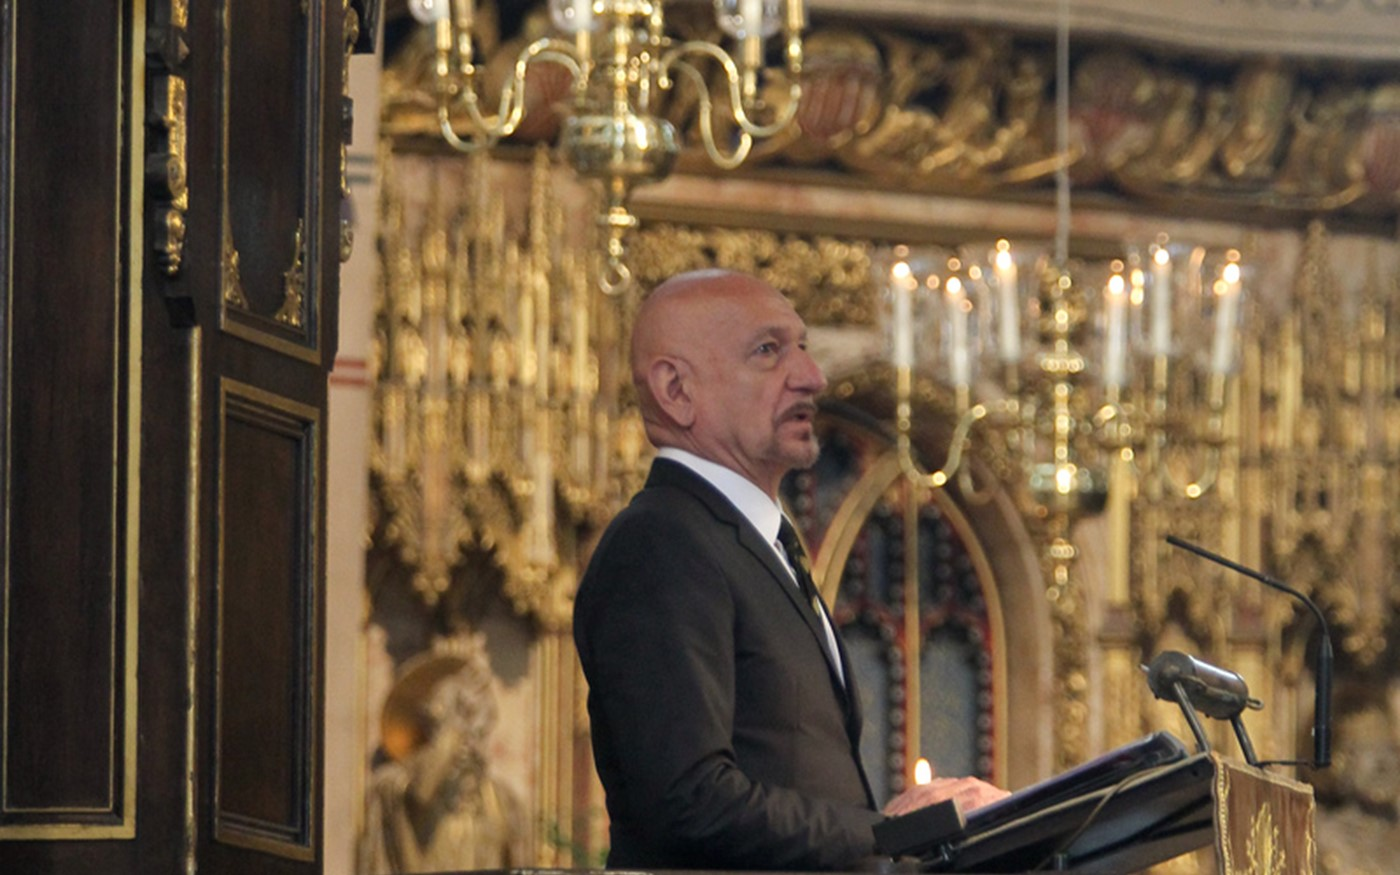 Sir Ben Kingsley reads from The Writings of Gandhi